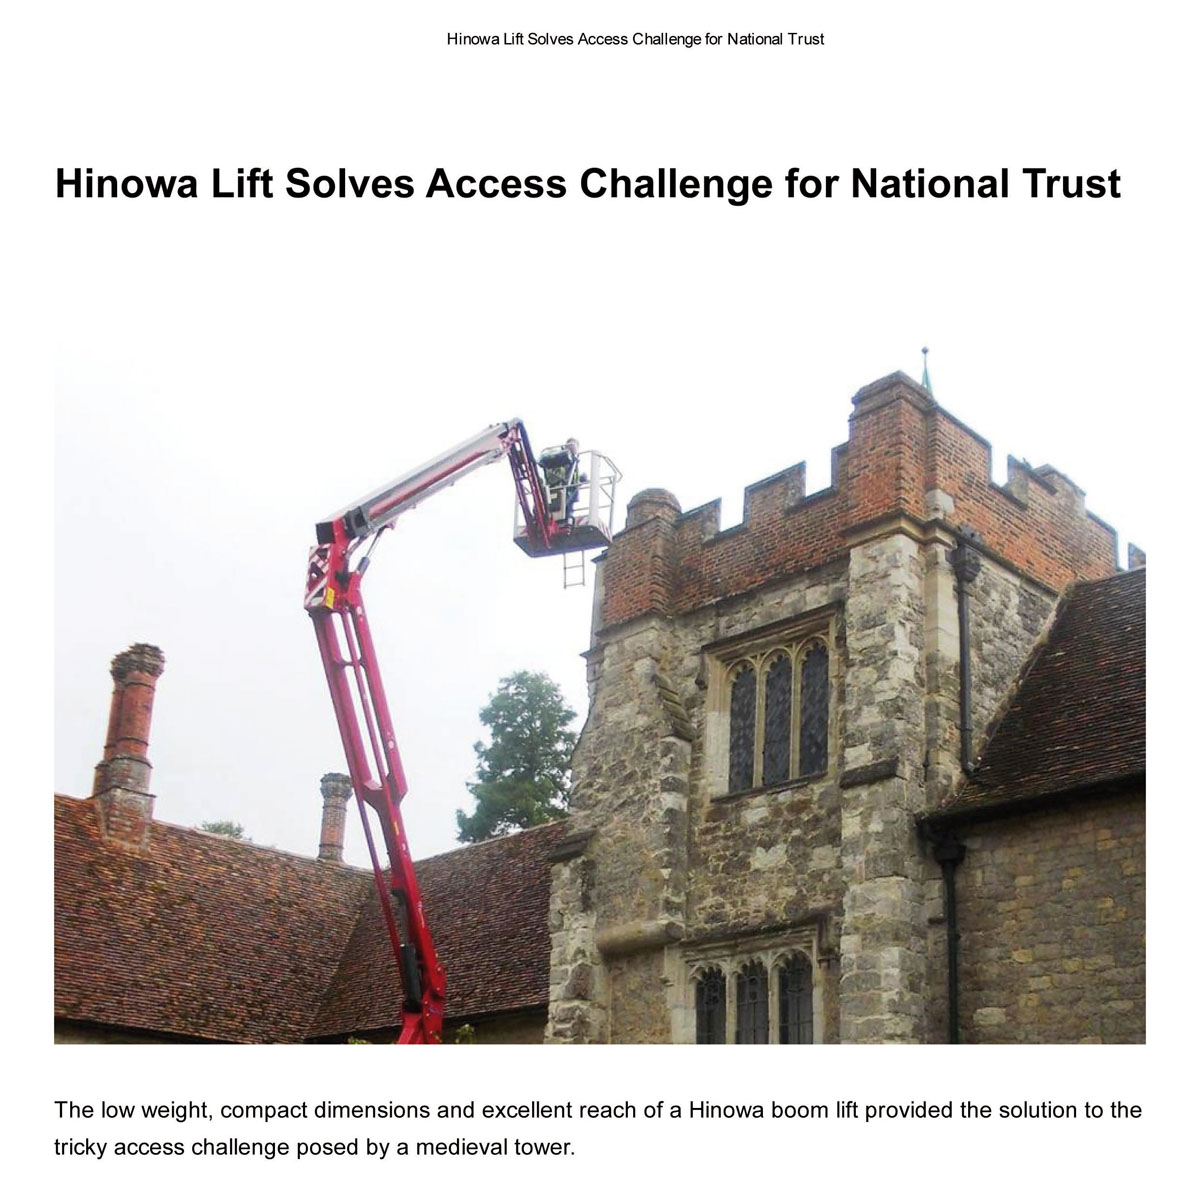 icona_hinowa_lift_solves_access_challenge_for_national_trust.jpg